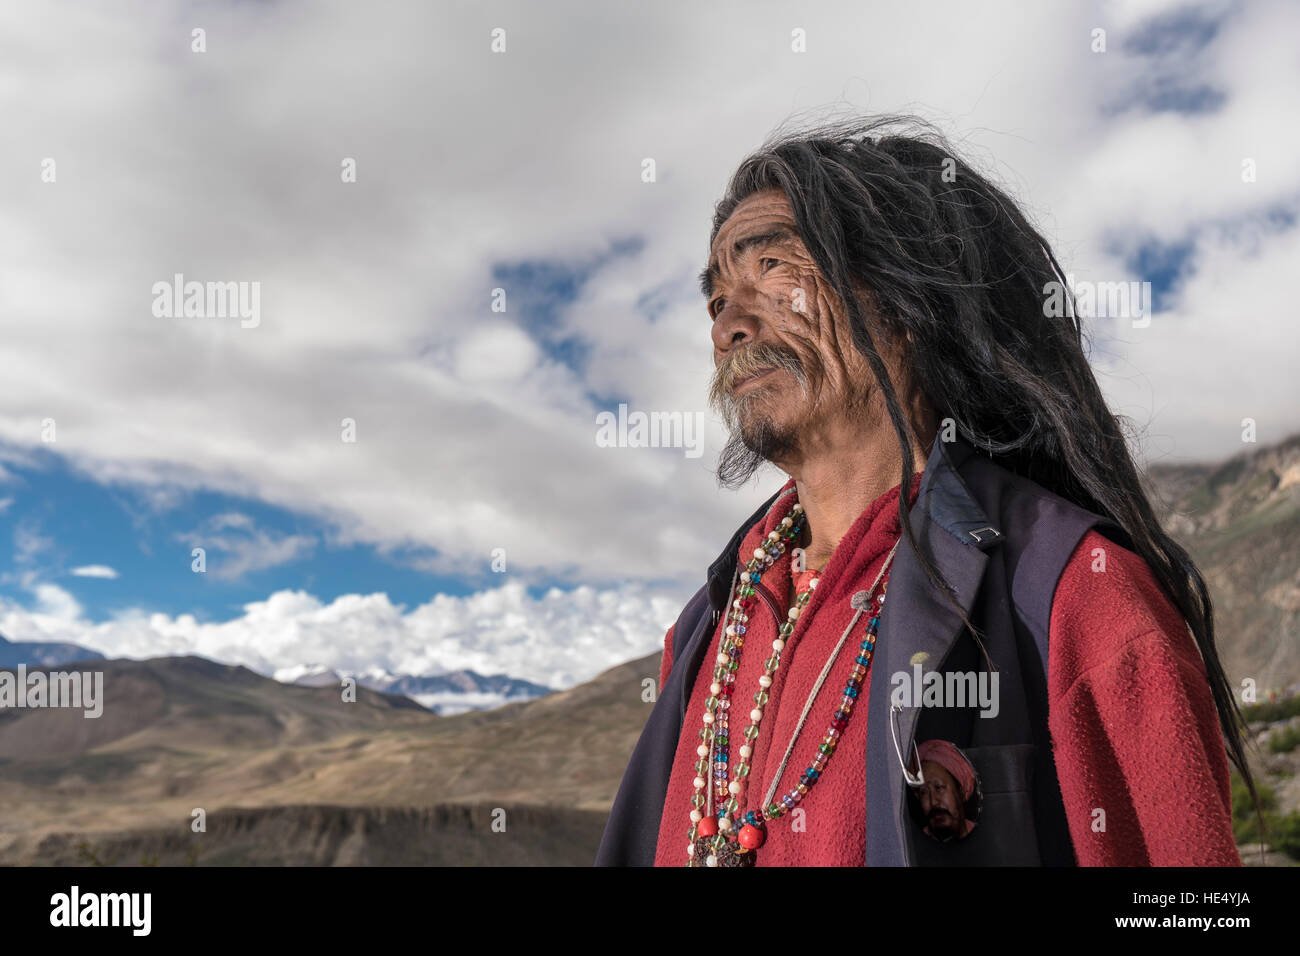 A portrait of a Sadhu, holy man, looking into the himalayan mountains - Stock Image